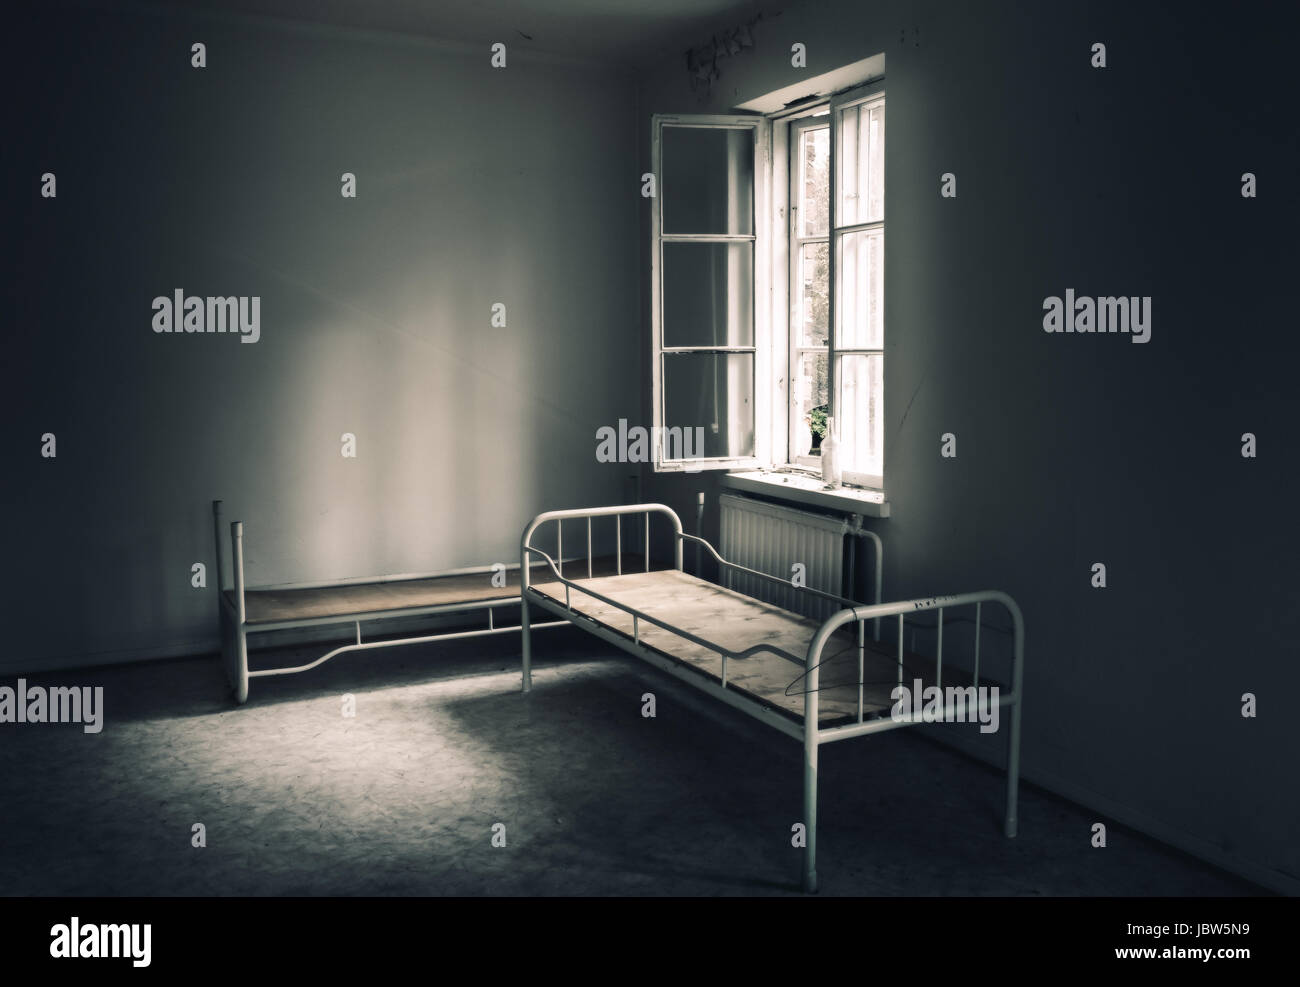 dunklen raum in das verlassene haus stockfoto bild 144997477 alamy. Black Bedroom Furniture Sets. Home Design Ideas